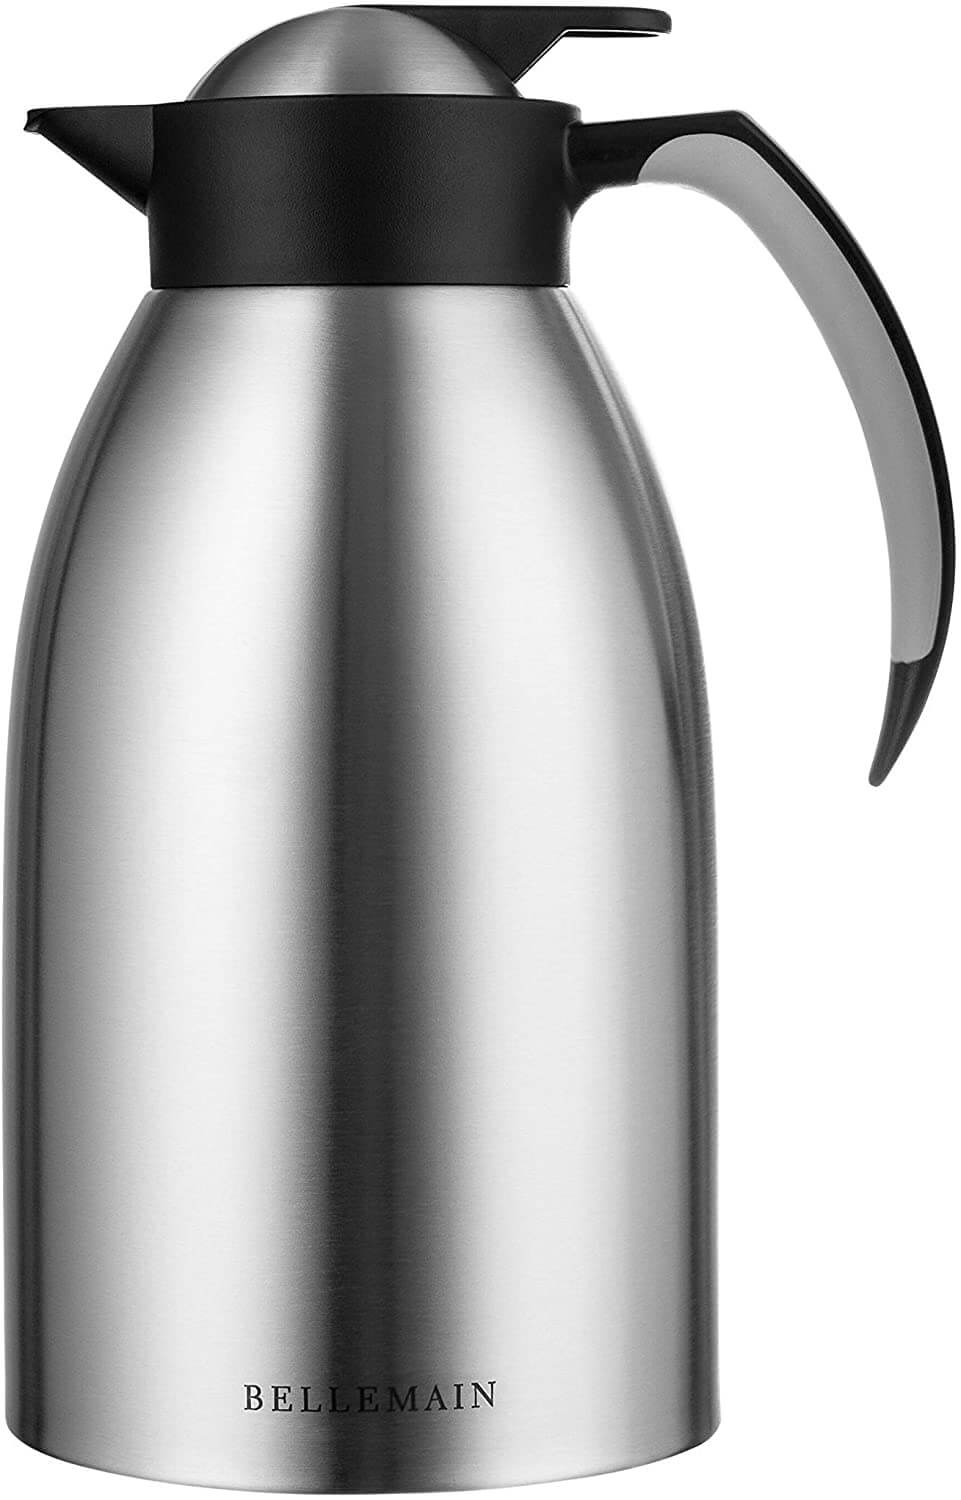 Bellemain Premium Thermal Coffee Carafe